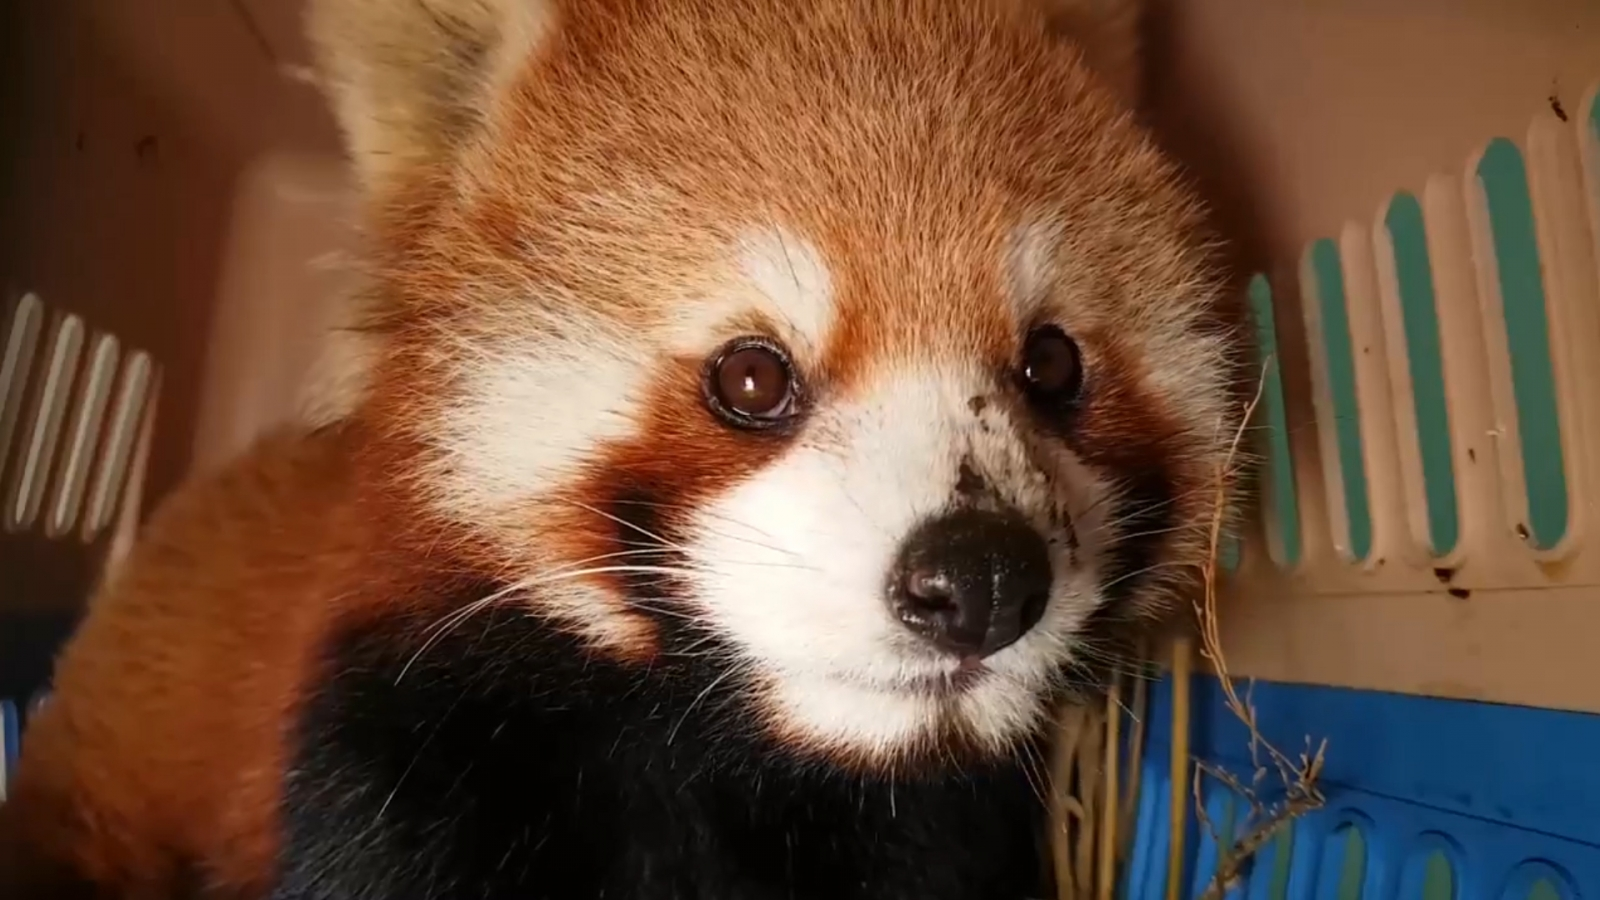 worlds-largest-seizure-of-live-red-pandas-conducted-in-laos